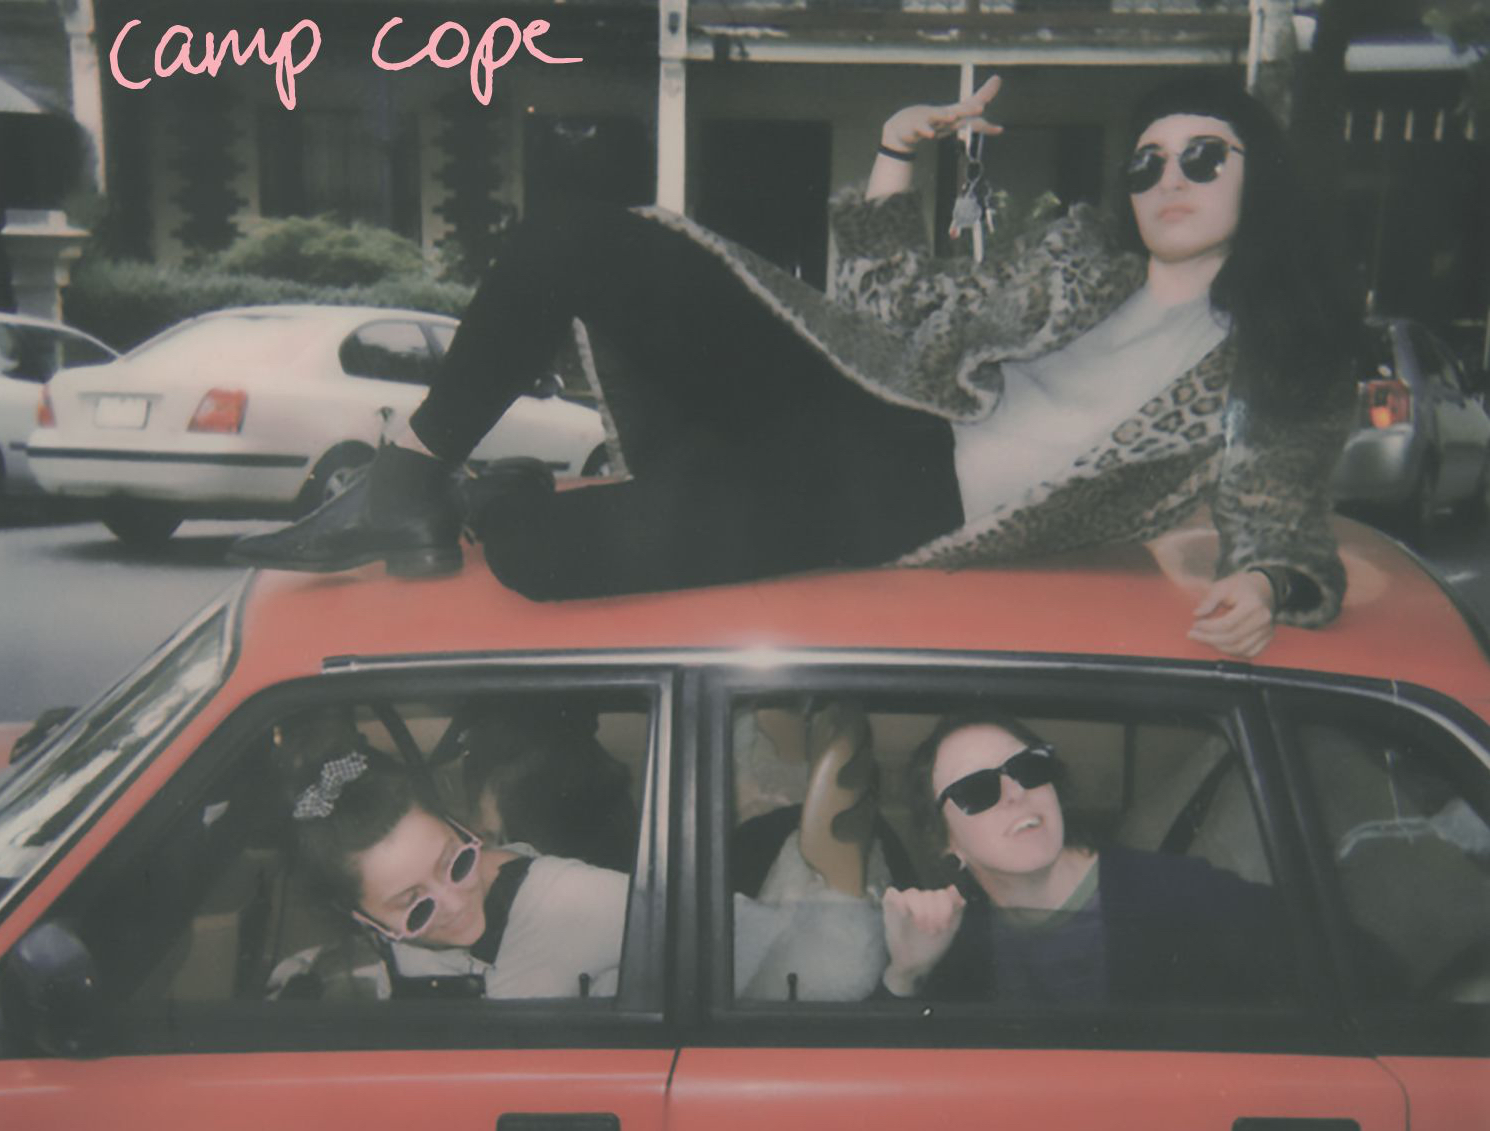 Camp Cope shares dates for Spring headlining tour